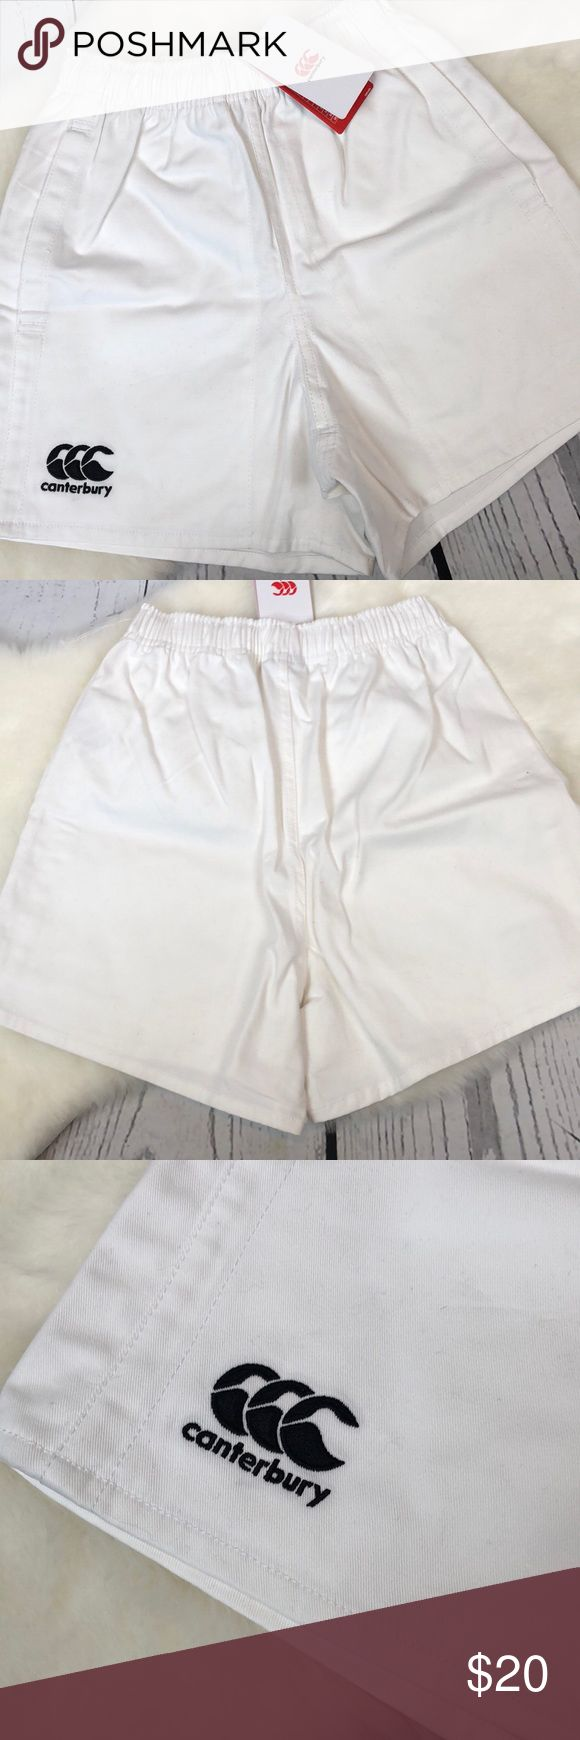 """•Canterbury• White NEW Men's Sport Shorts Rugby XS Brand new with tags ... Canterbury Men's Advantage Professional White Shorts. Size XS (waist 28-30""""). Side pockets & drawstring waist. Must have Rugby uniform shorts. Sell over $35 online. Brand new condition from a smoke free home!! Length (inseam) is 4"""". Black stitched logo. Canterbury Shorts Athletic"""